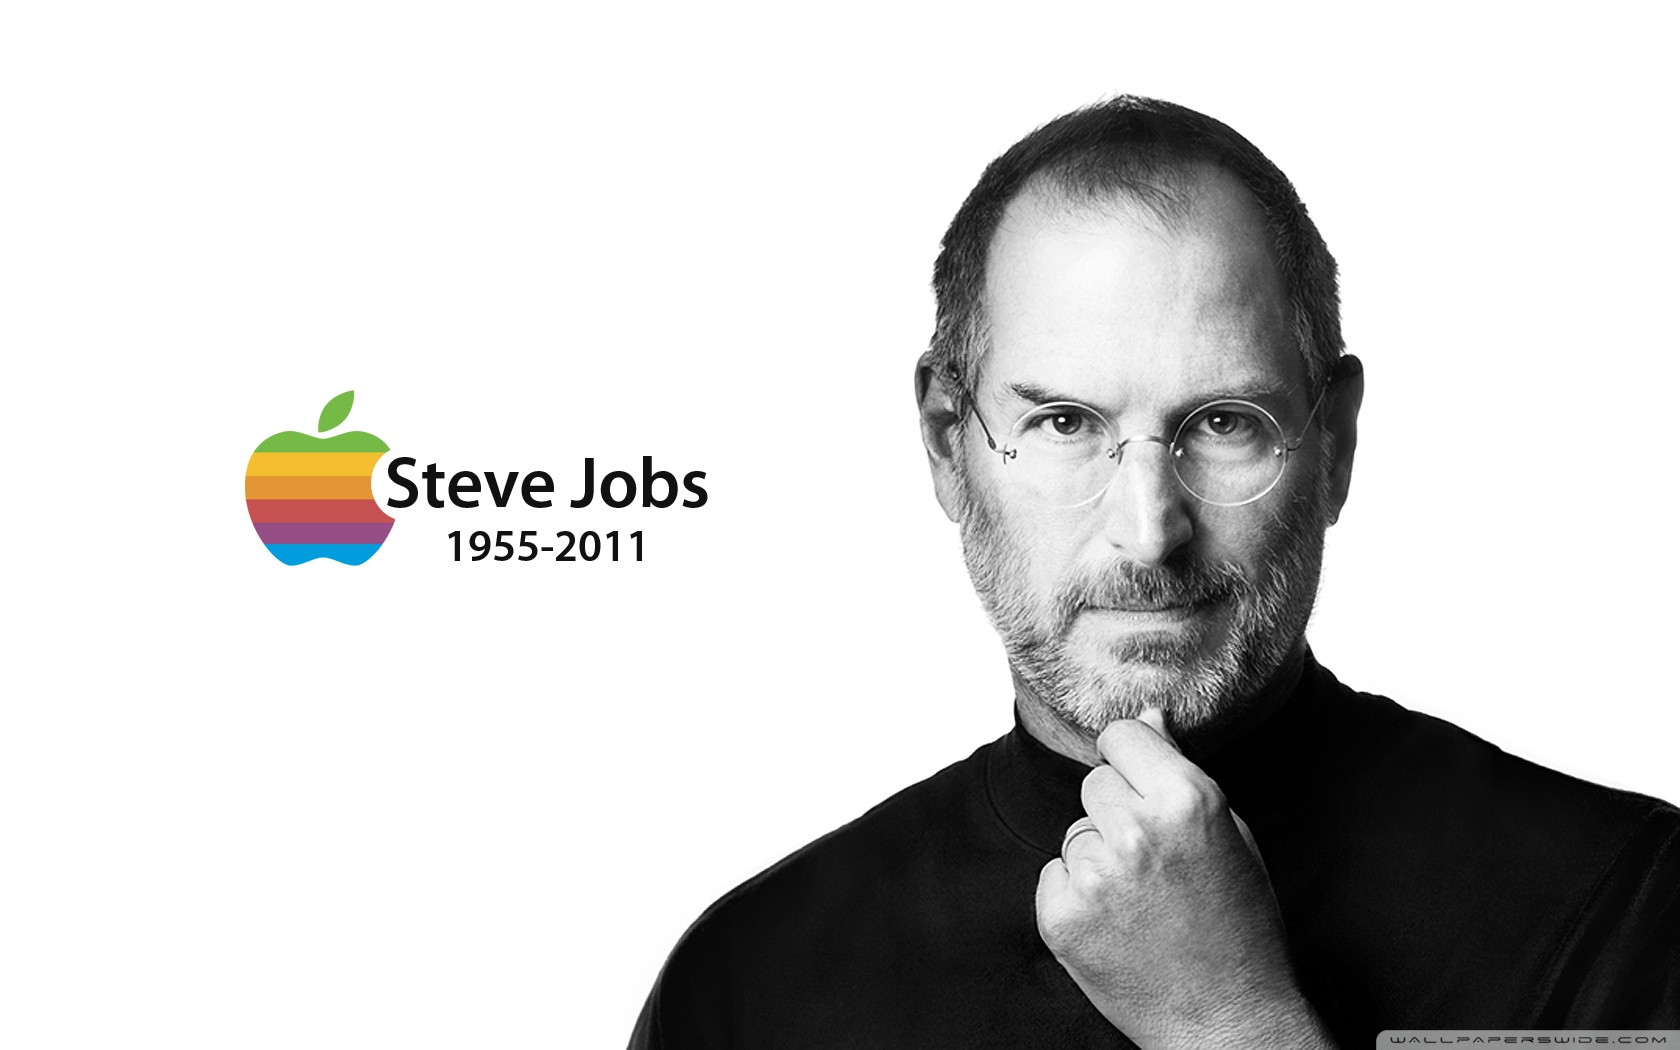 steve jobs essays Steve jobs, the american businessman and technology visionary who is best known as the co-founder, chairman, and chief executive officer of apple inc, was born on.